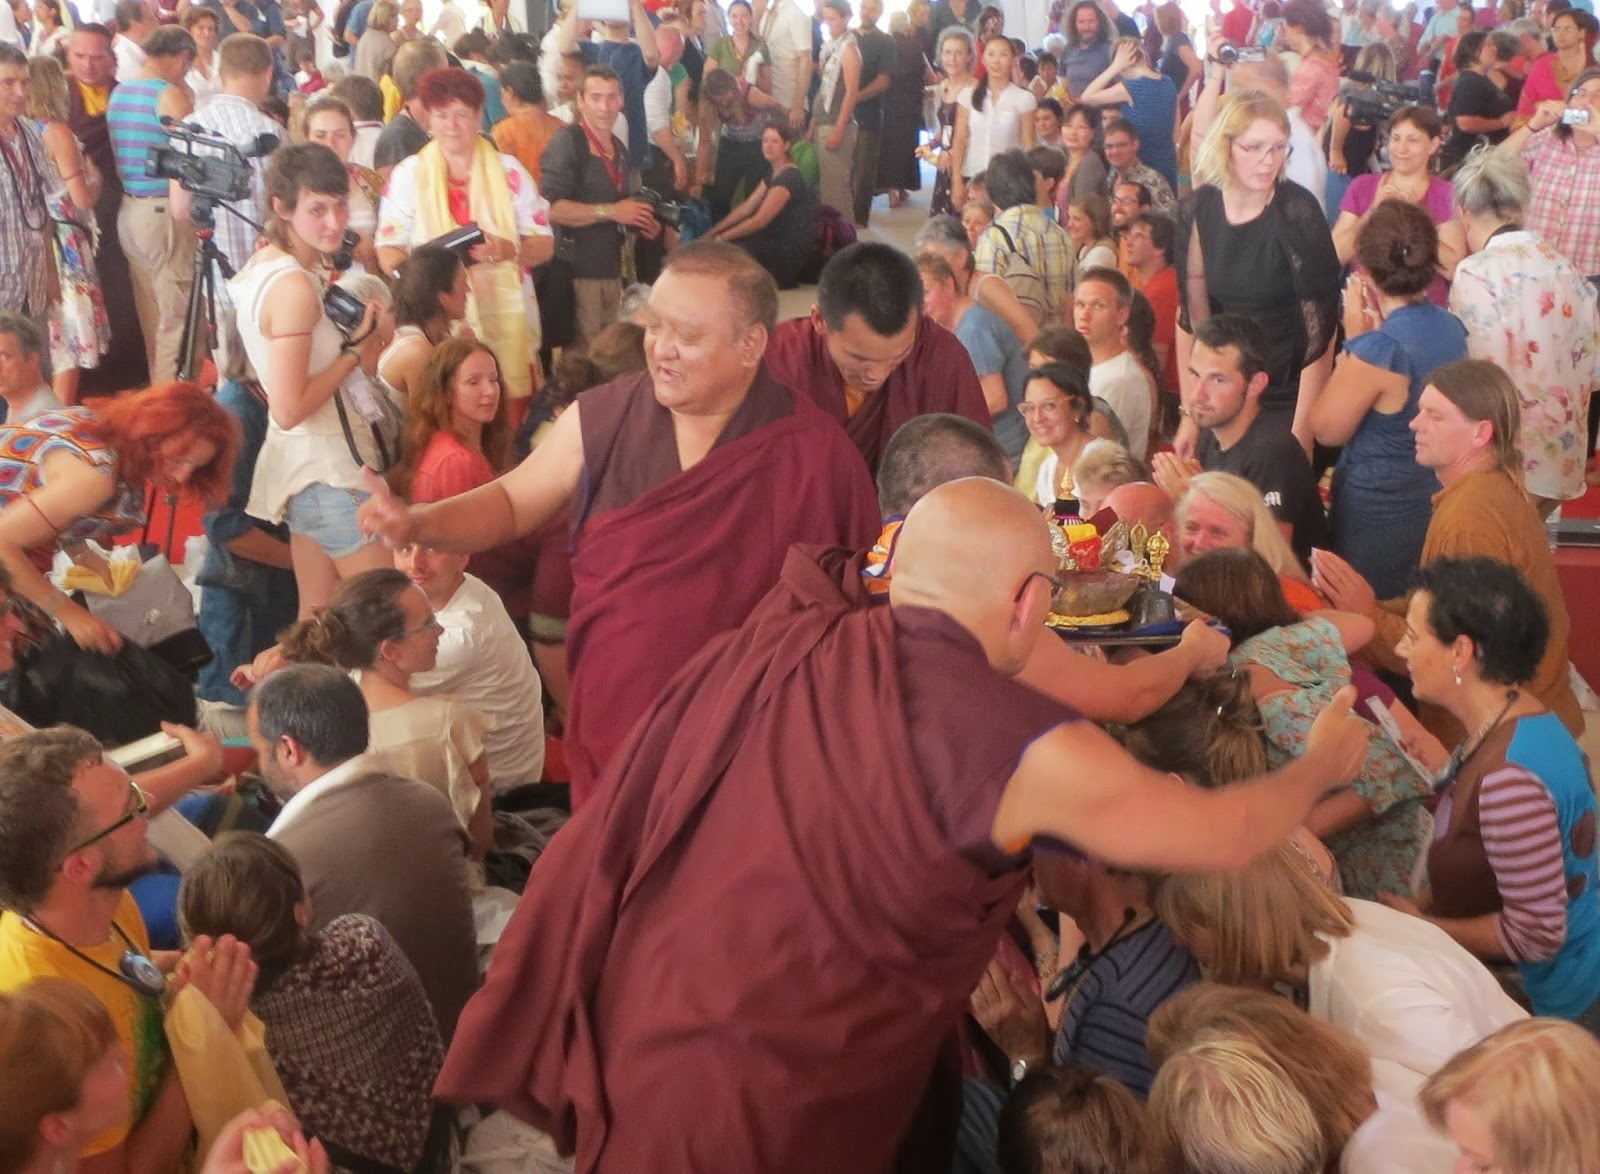 Kunzig Sharma Rinpoche giving blessings, Dhagpo Kagyu Ling, Institute Opening 2013